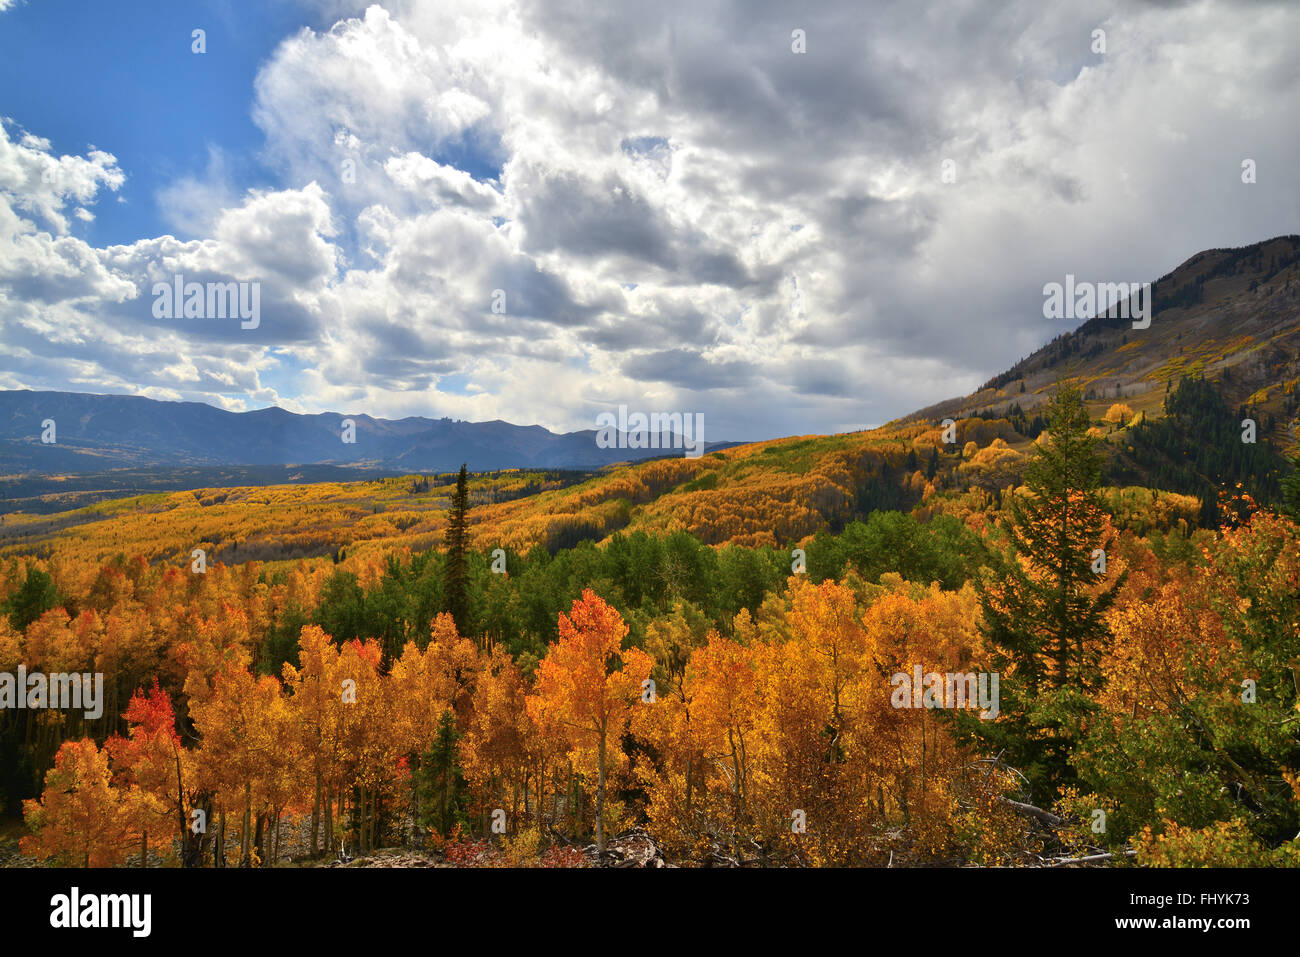 Fall colors along Forest Road 730 at Ohio Pass near Crested Butte, Colorado - Stock Image